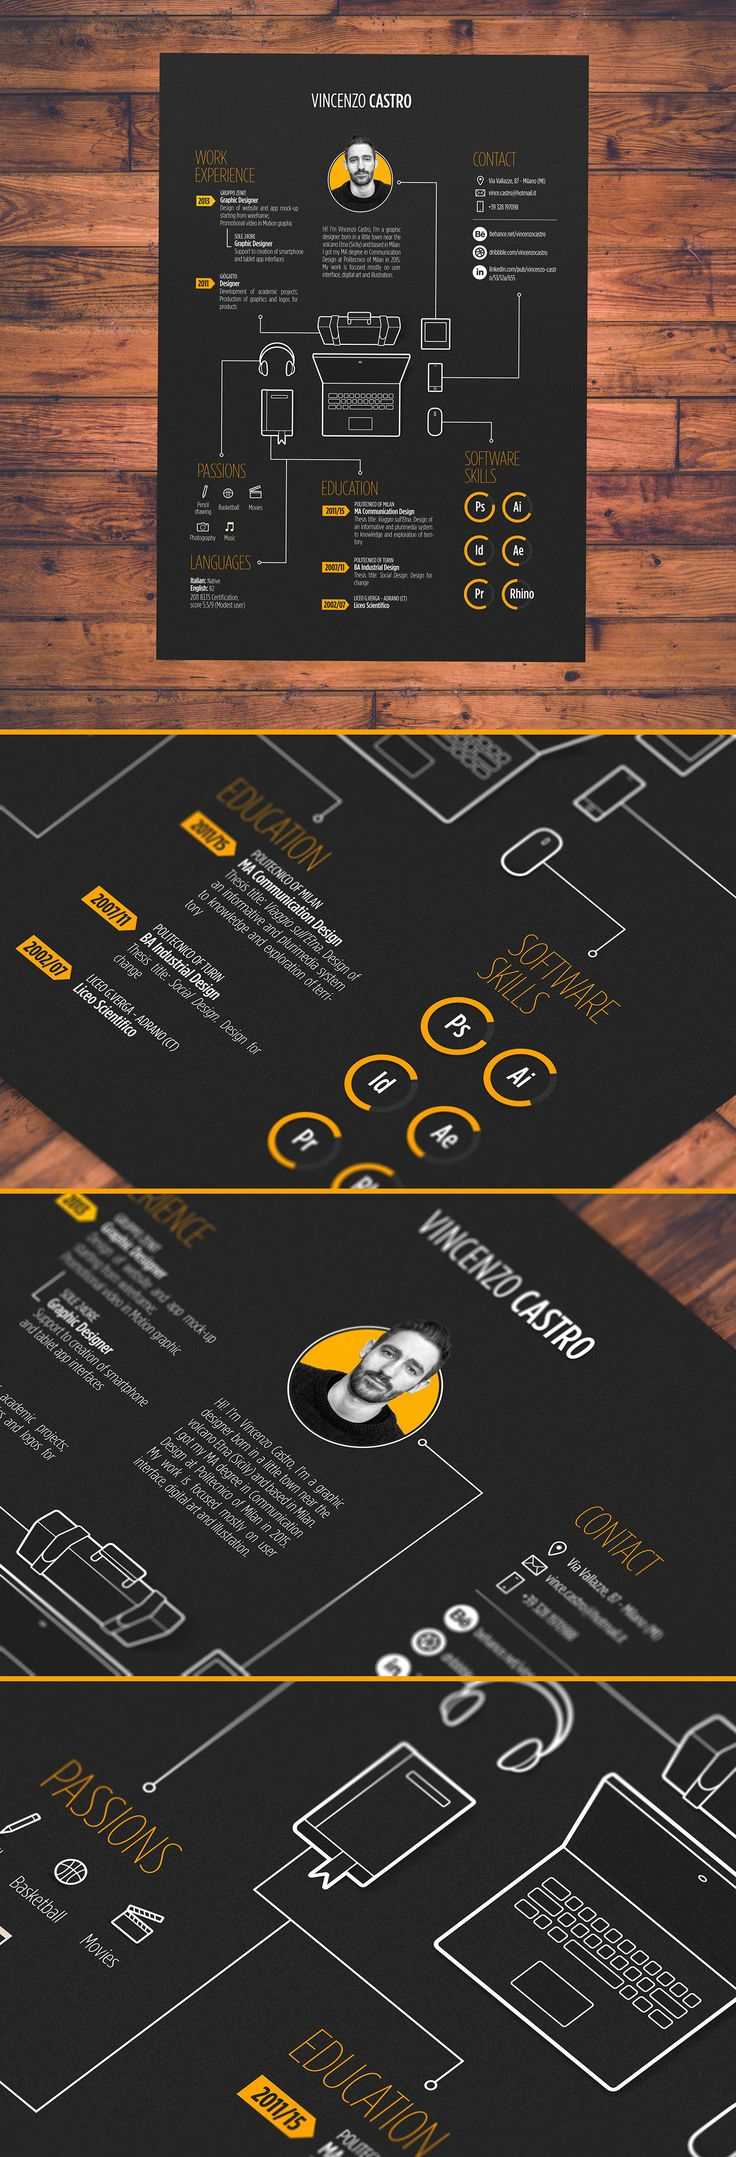 Curriculum vitae - Plantillas diseños https://www.behance.net/gallery/26611697/Curriculum-Vitae FORMATOS http://www.modelocurriculum.net/modelos-y-plantillas-de-curriculum-vitae https://www.pinterest.com/search/pins/?q=curriculum%20vitae&term_meta%5B%5D=curriculum%7Ctyped&term_meta%5B%5D=vitae%7Ctyped 50 MODELOS http://www.modelos-de-curriculum.com/ ENTEL http://comunidad.entel.cl/internet/posts/disena-tu-curriculum-vitae-en-linea